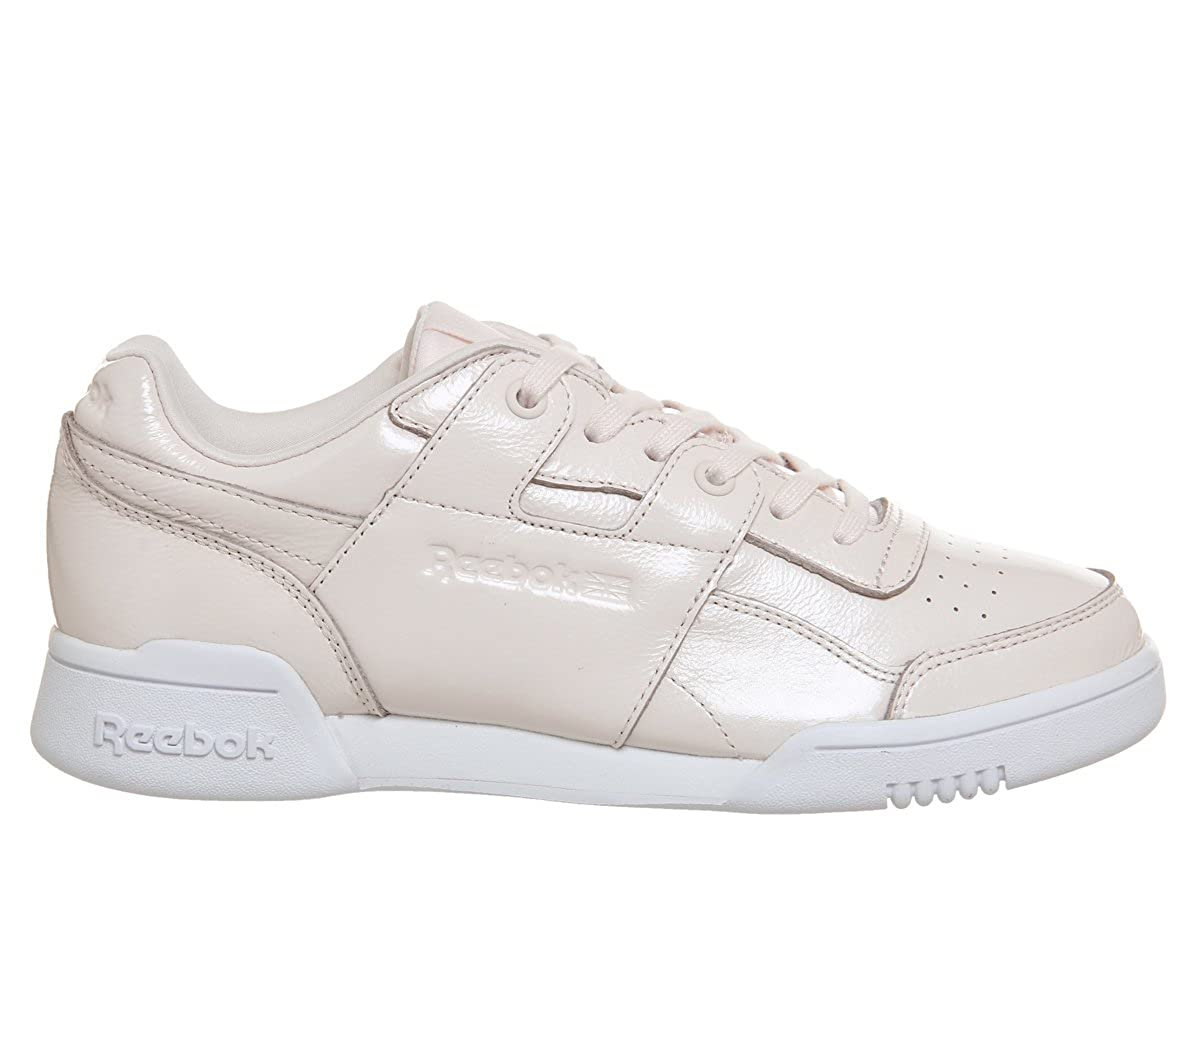 a3f4c16f73621d Amazon.com  Reebok Workout Lo Plus Iridescent Womens Sneakers Pink  Clothing